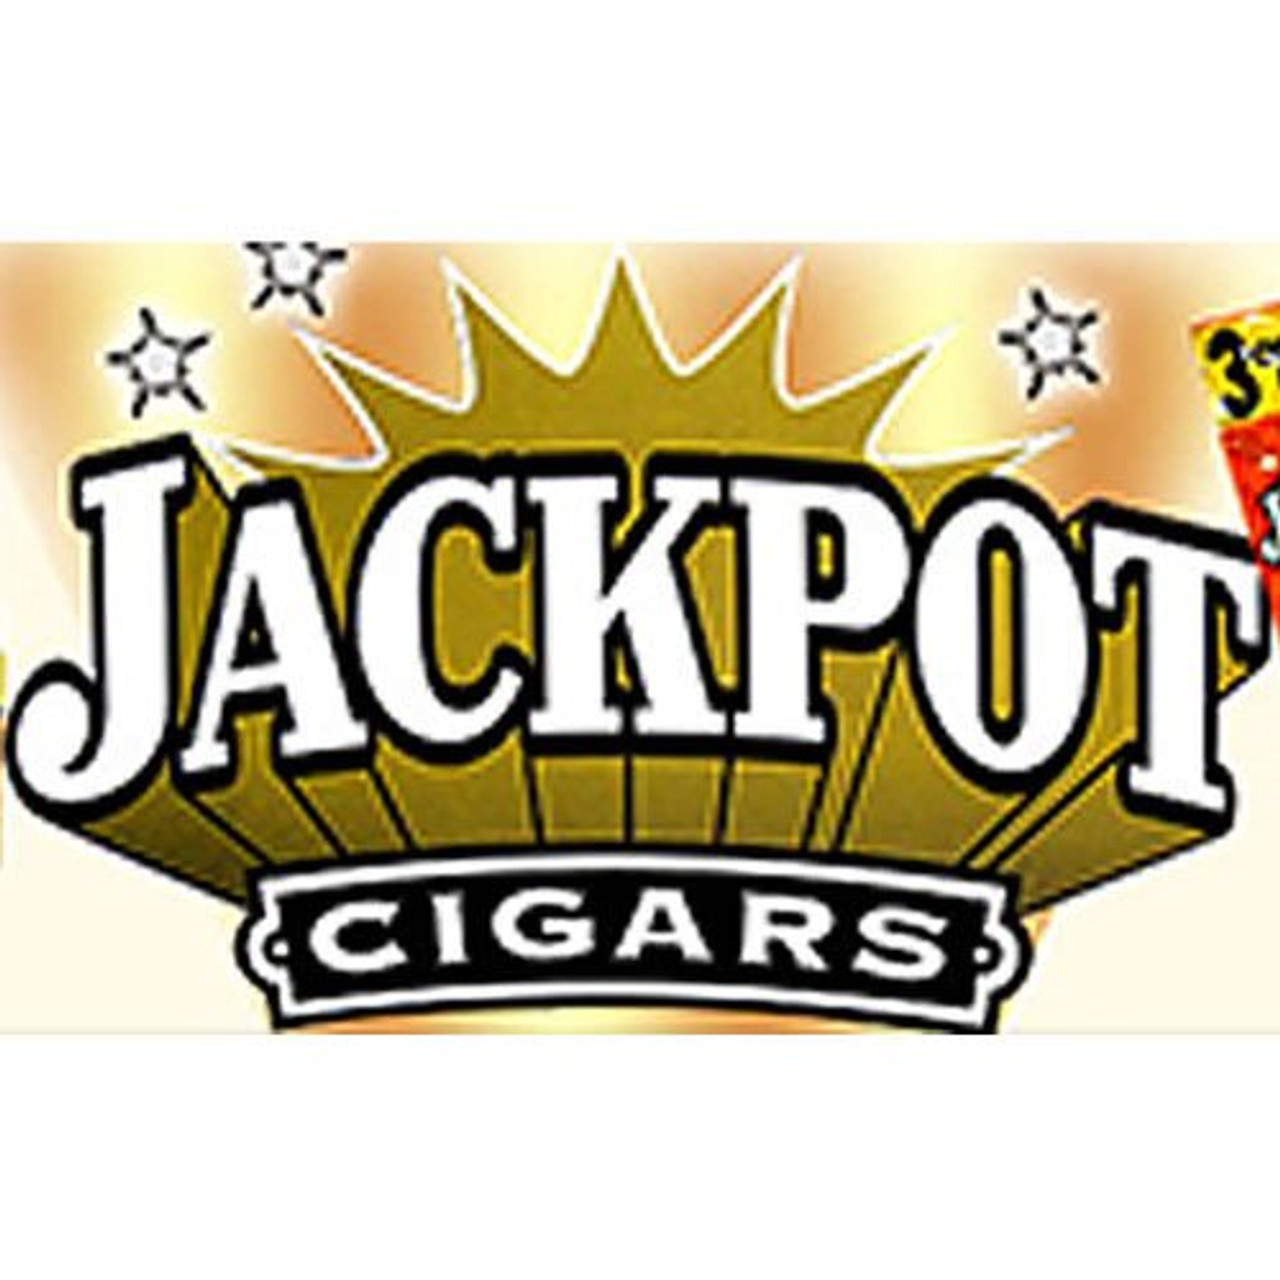 Jackpot Cigarillo Green Sweets Cigars - 4.69 x 28 (15 Packs of 3 (45 total))